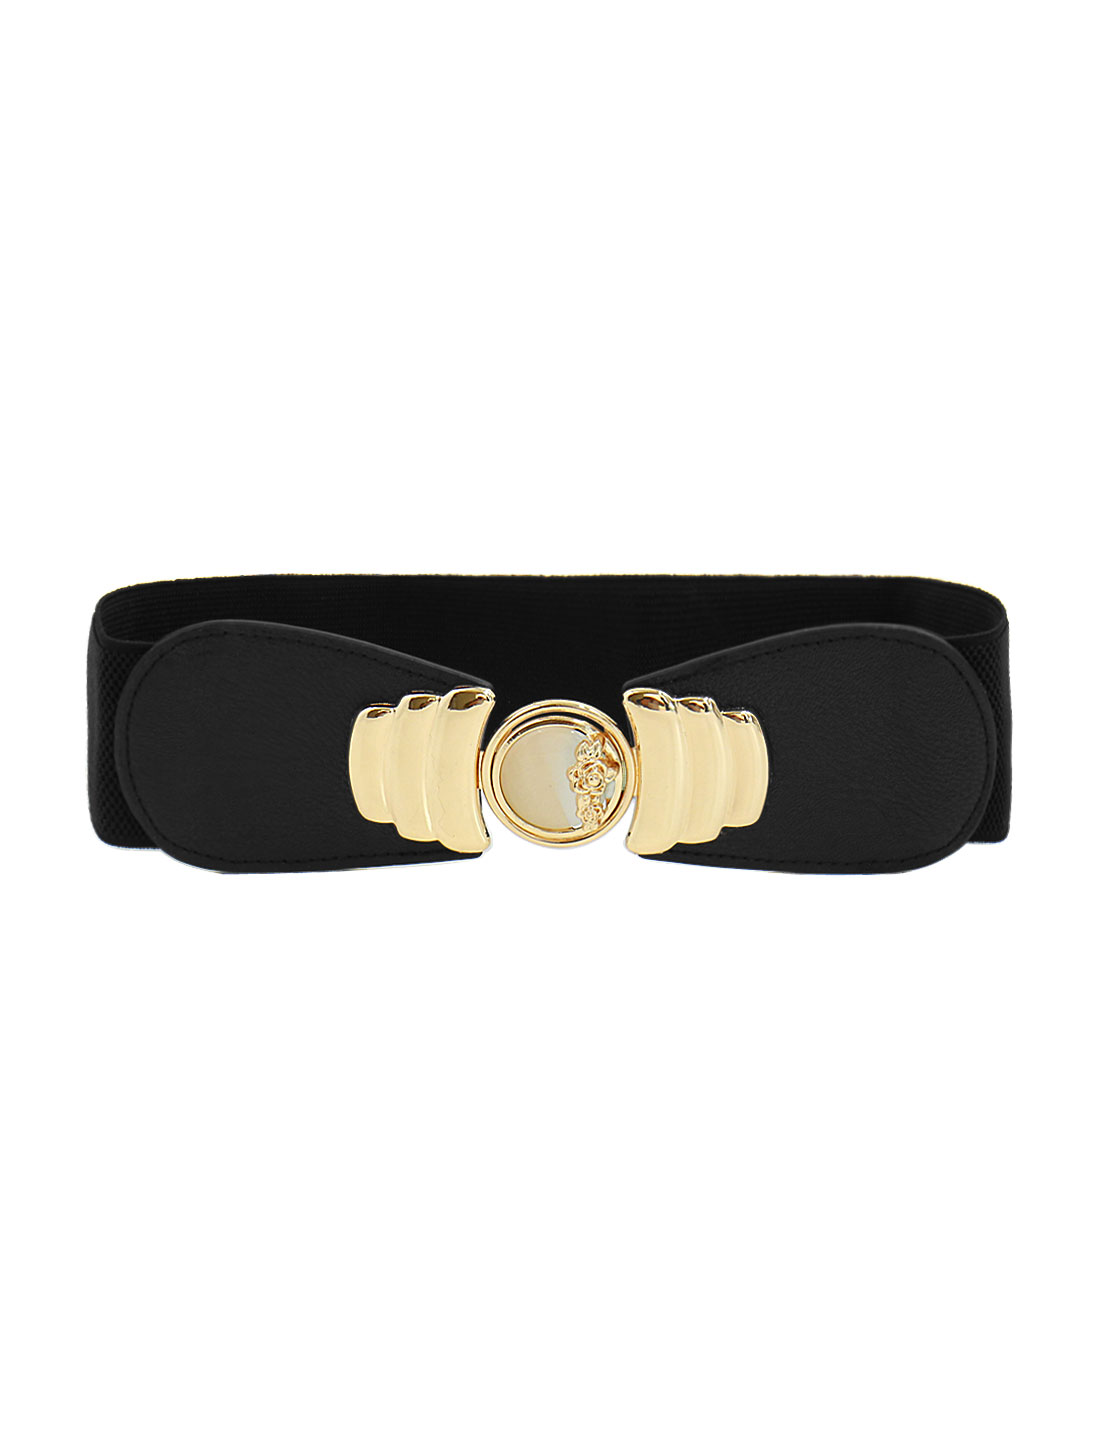 Women Elastic Waistband Floral Metal Decor Waist Belt Black